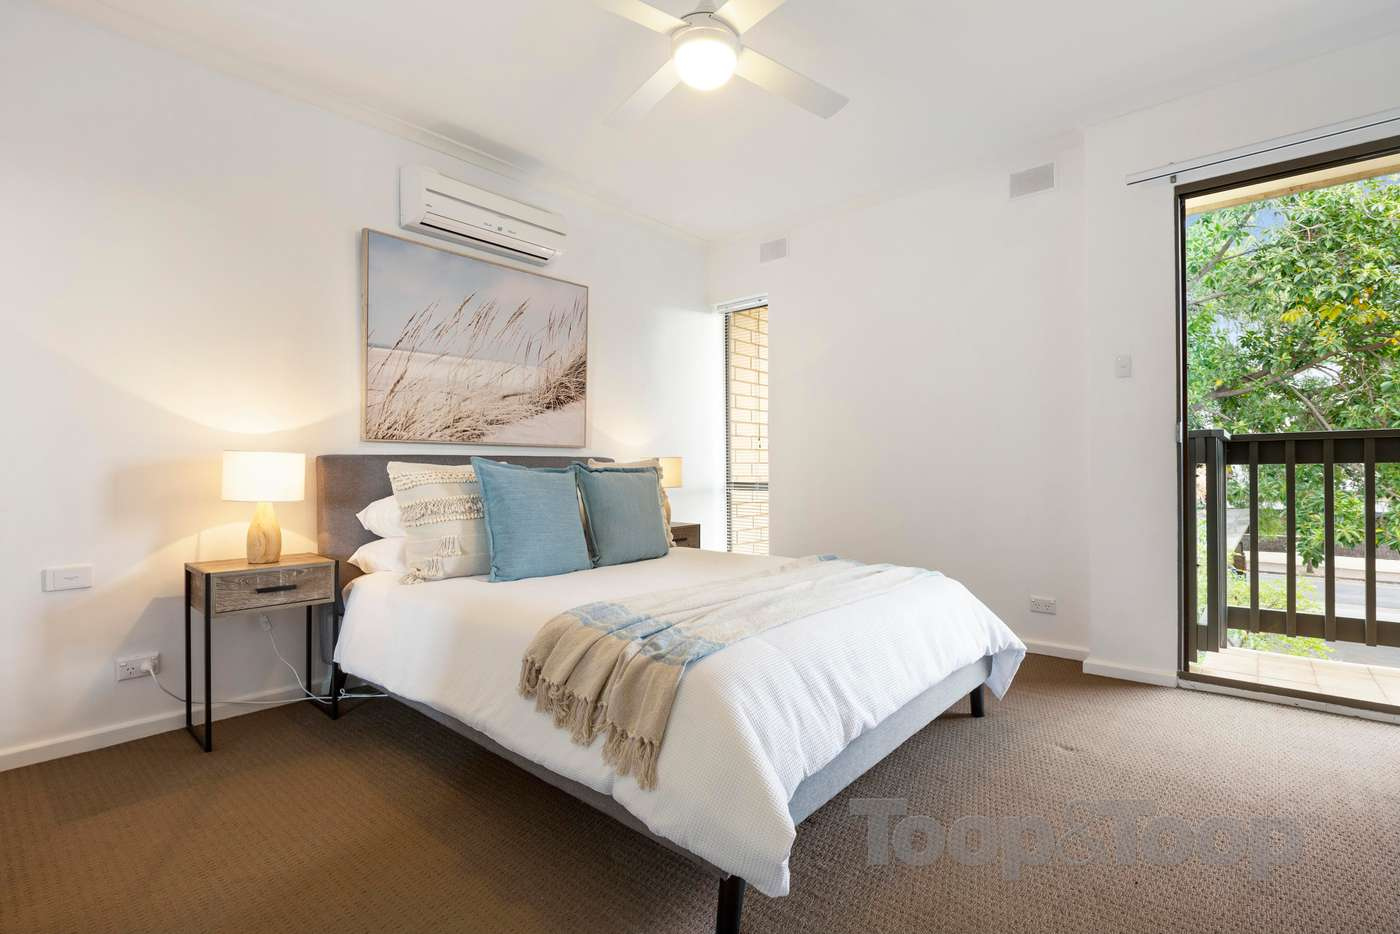 Sixth view of Homely townhouse listing, 4/18 Margaret Street, Norwood SA 5067